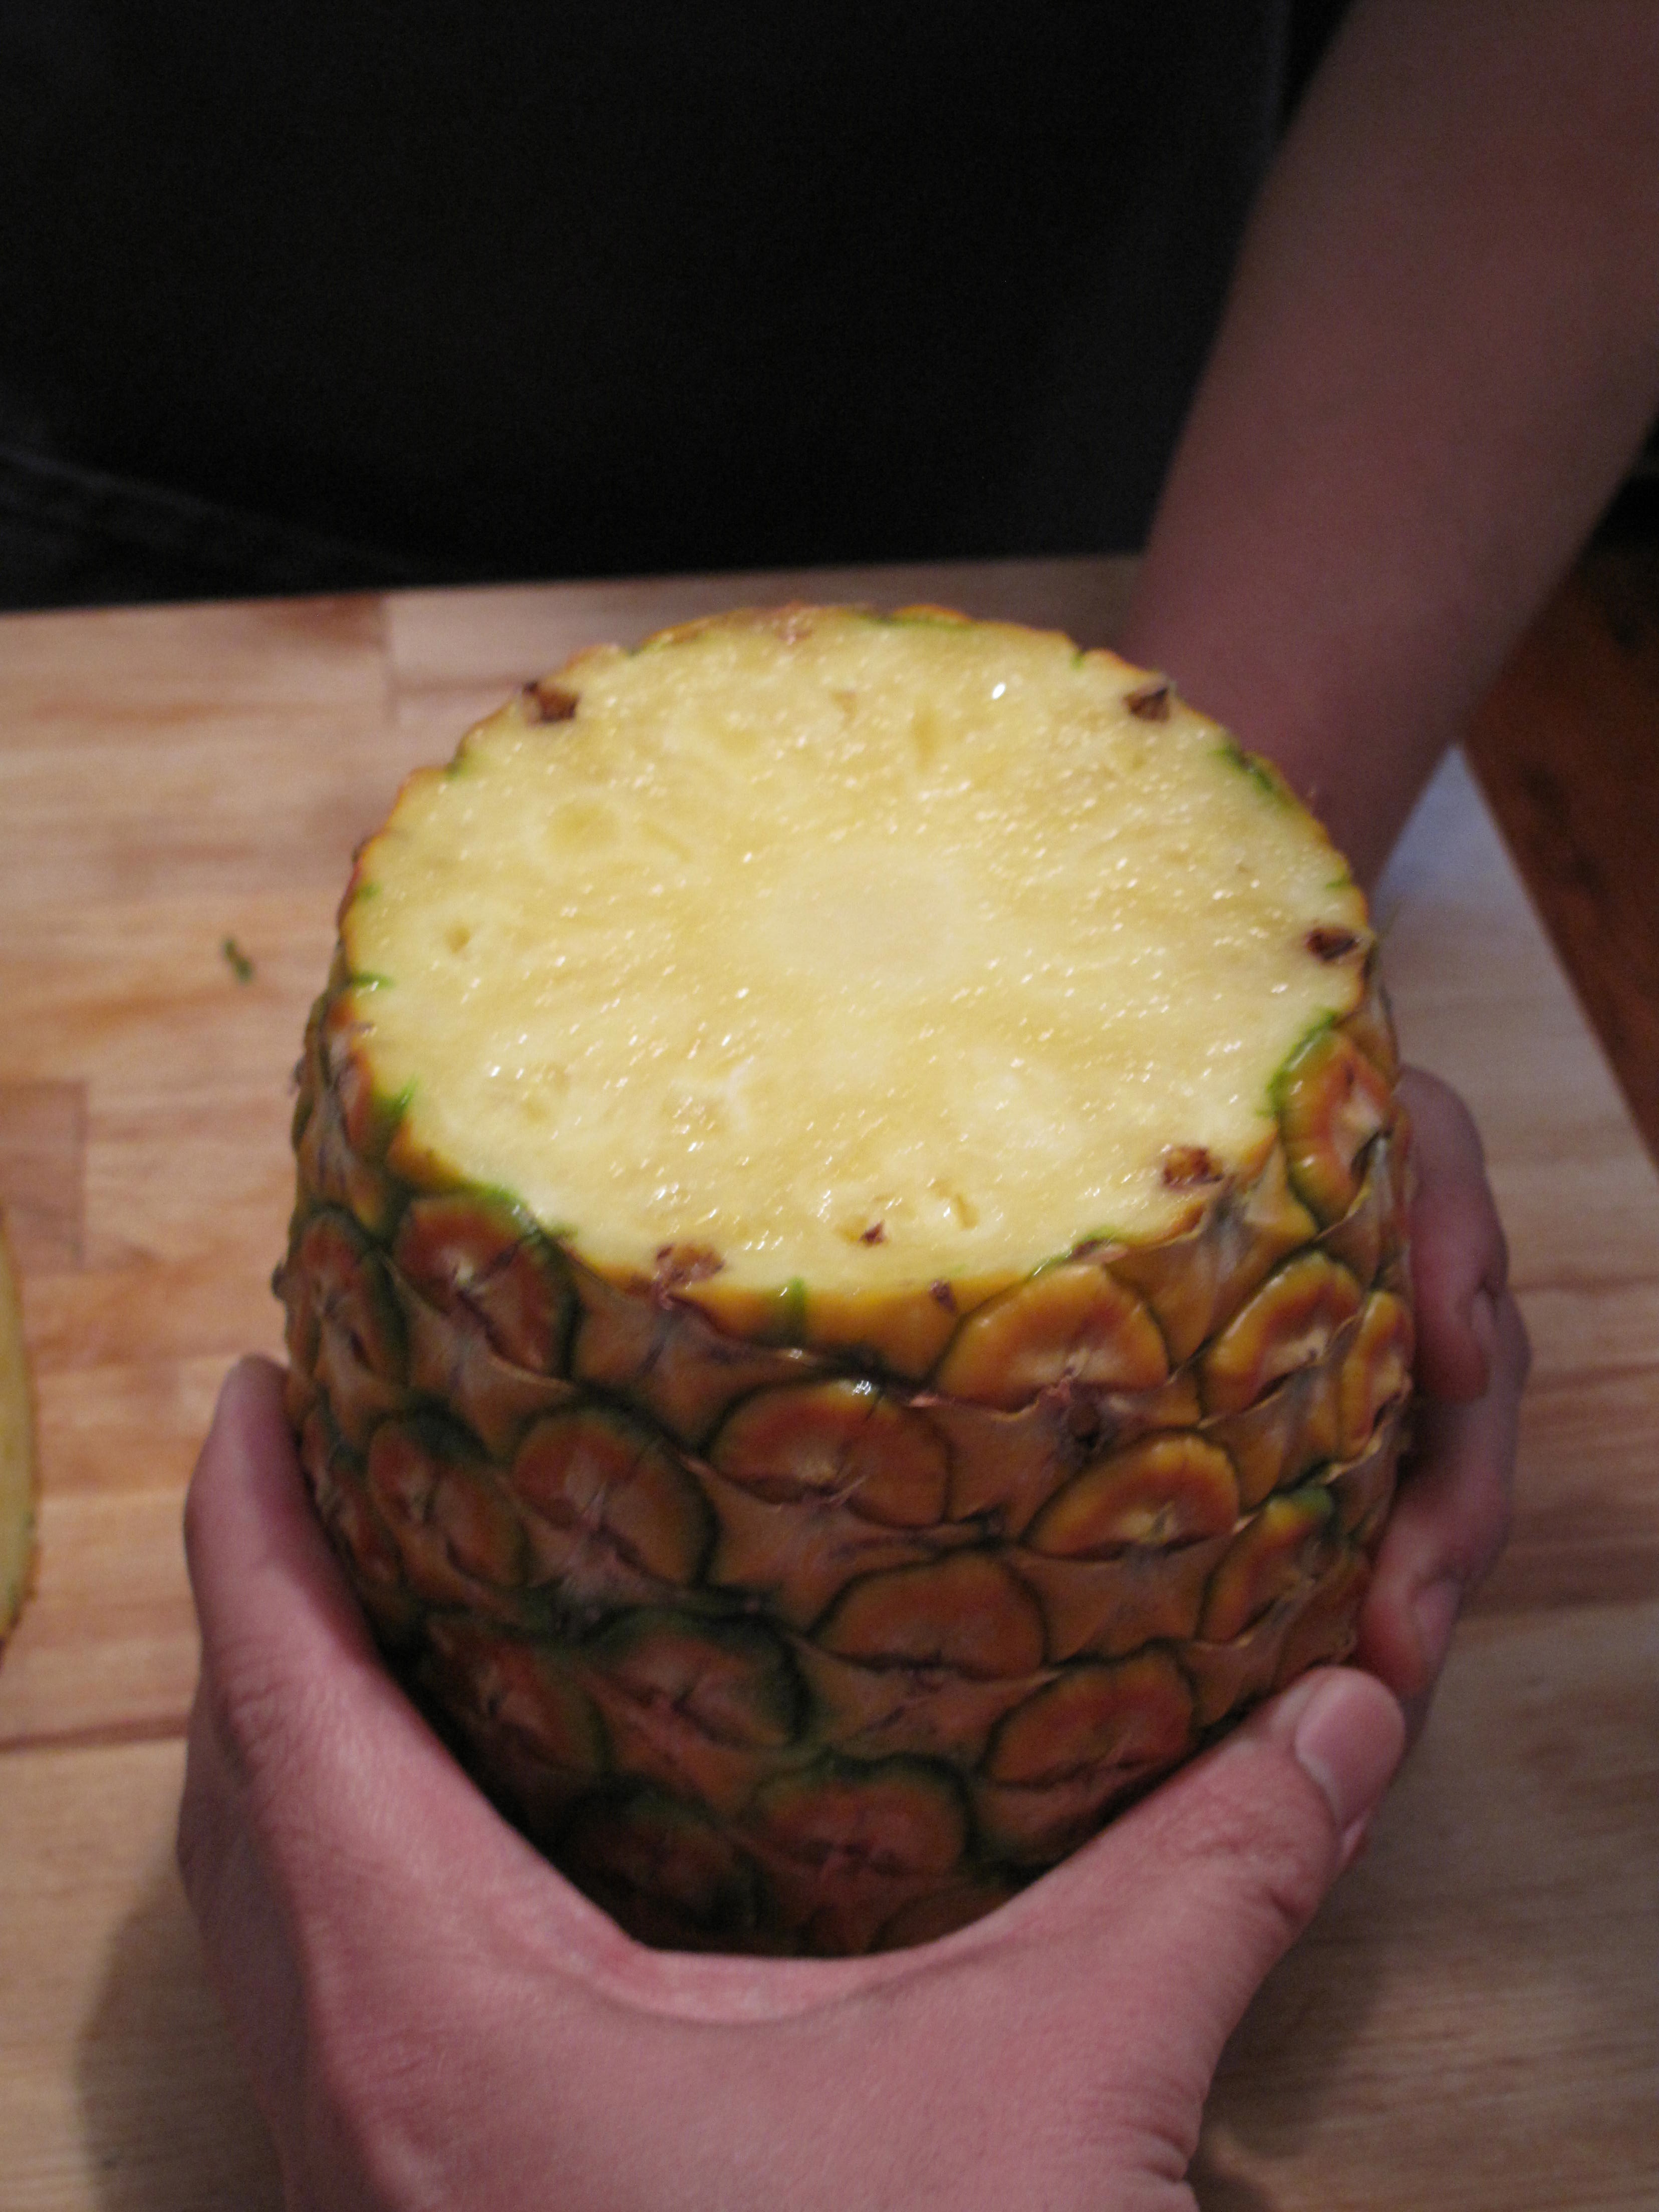 Set the pineapple upright, flesh-exposed top facing up.